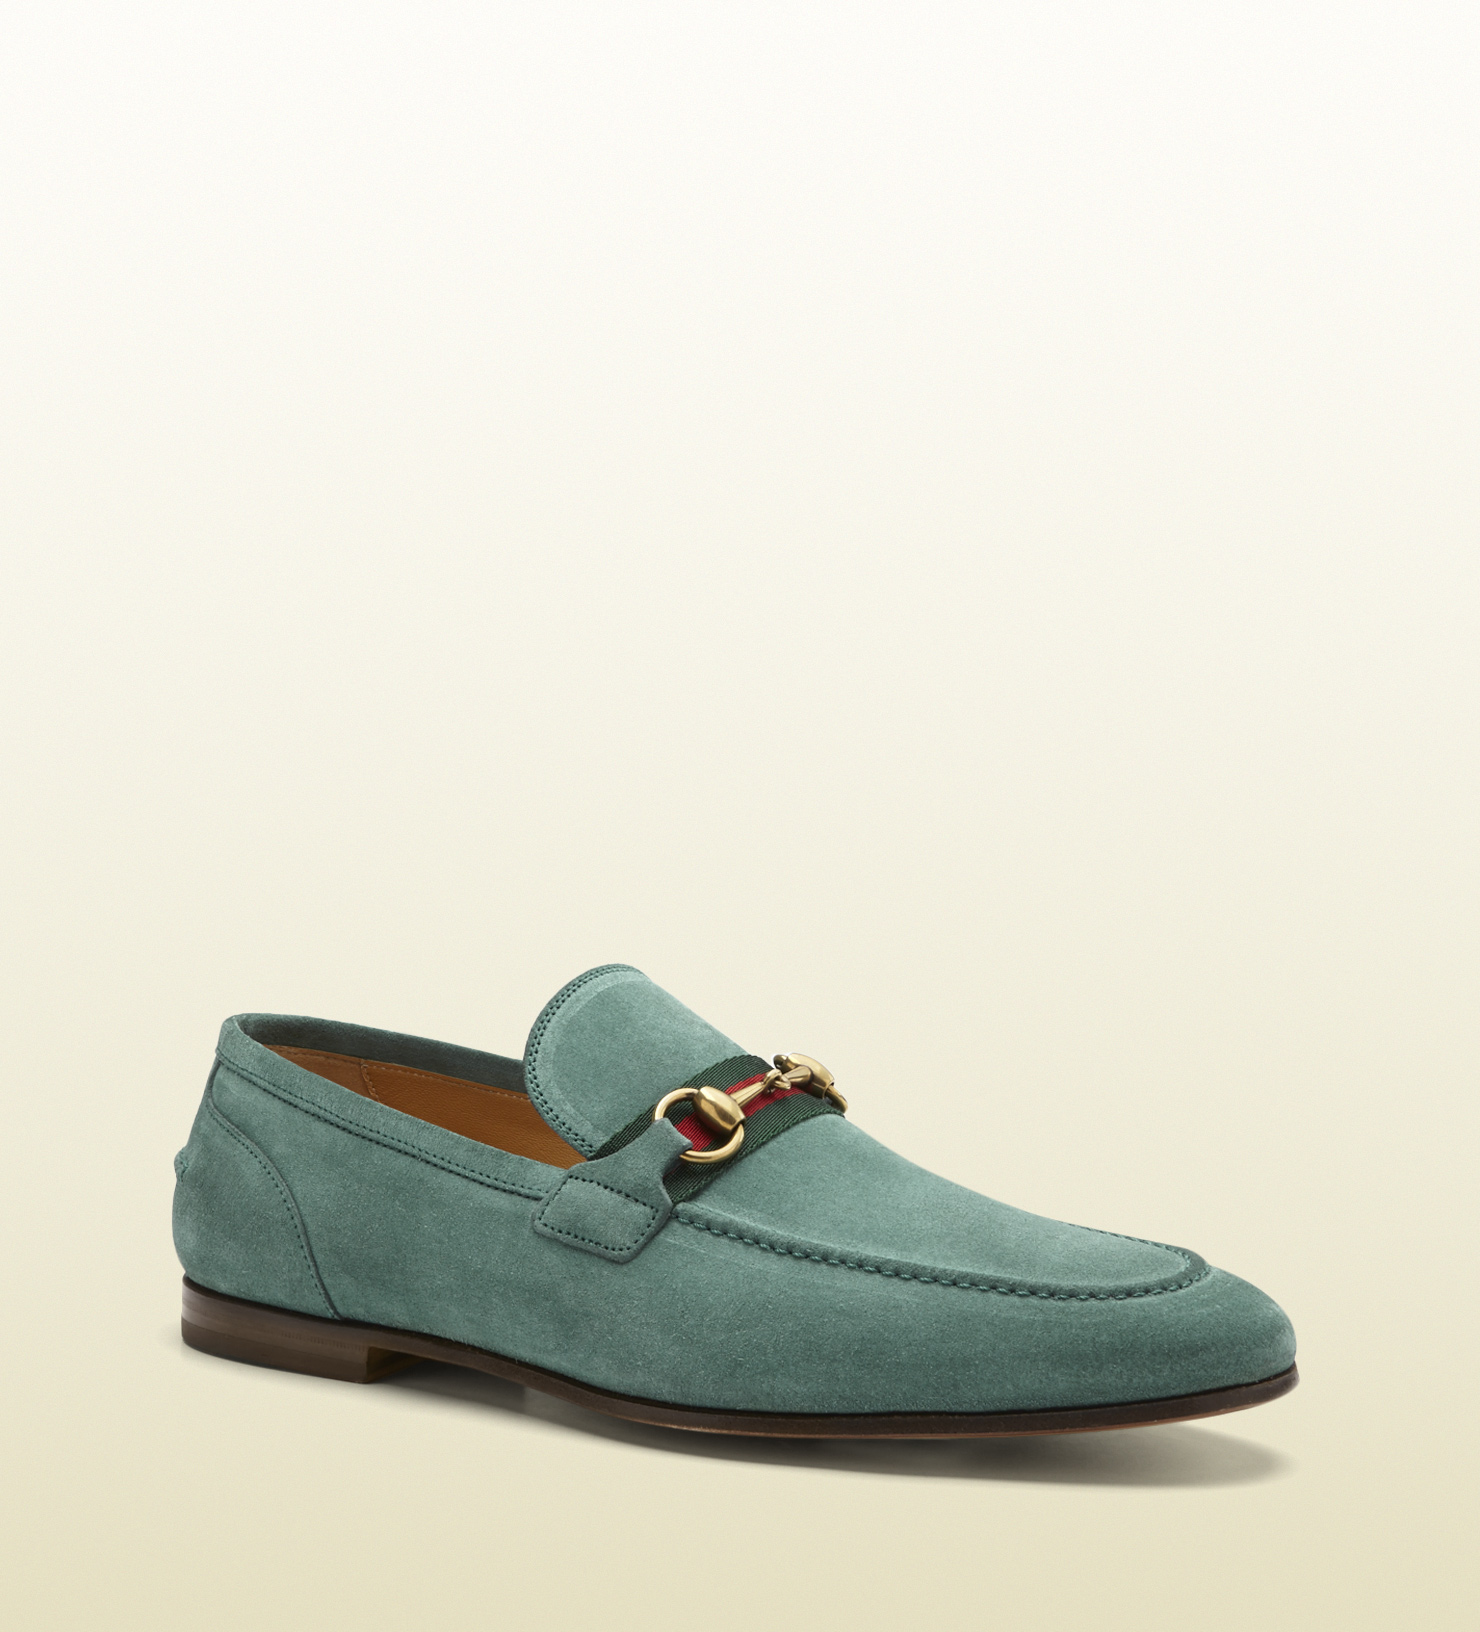 gucci suede horsebit loafer in blue for men lyst. Black Bedroom Furniture Sets. Home Design Ideas